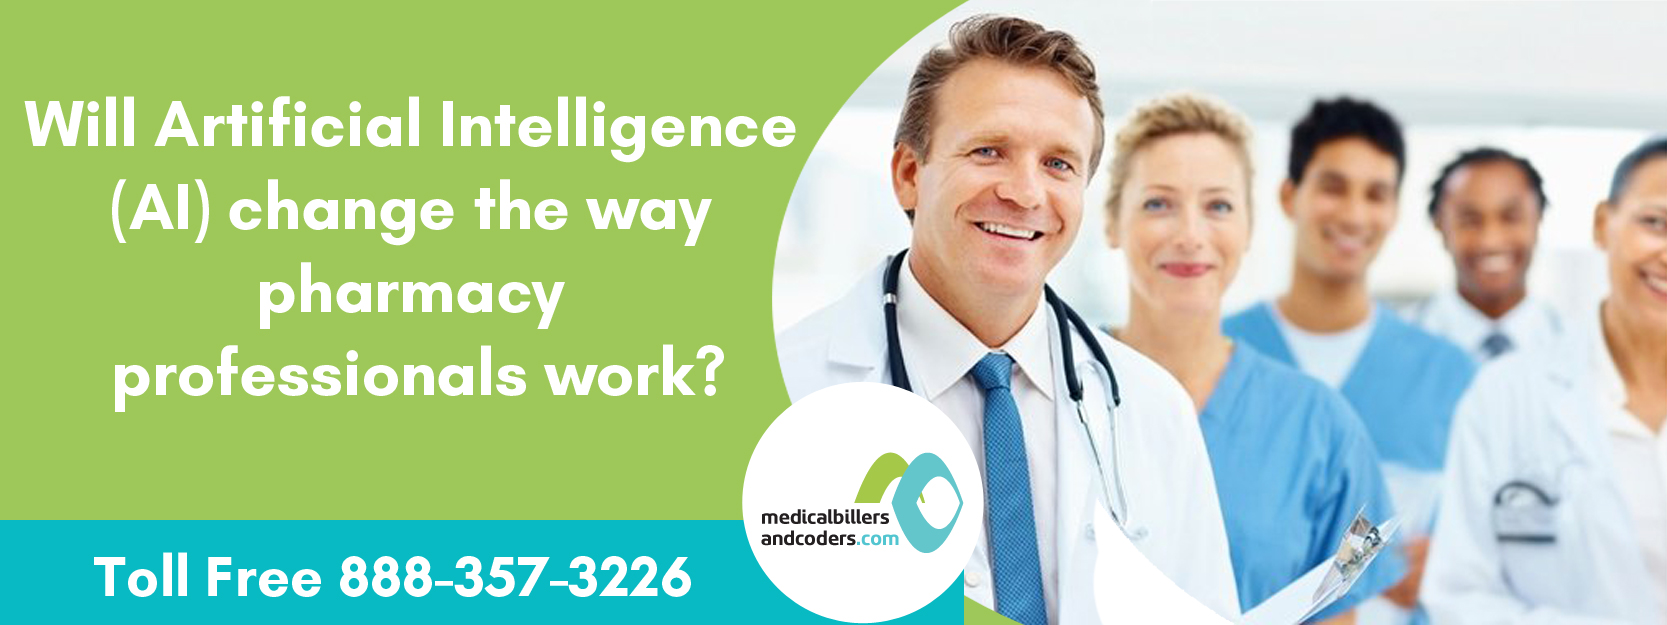 Will Artificial Intelligence (AI) Change the Way Pharmacy Professionals Work?